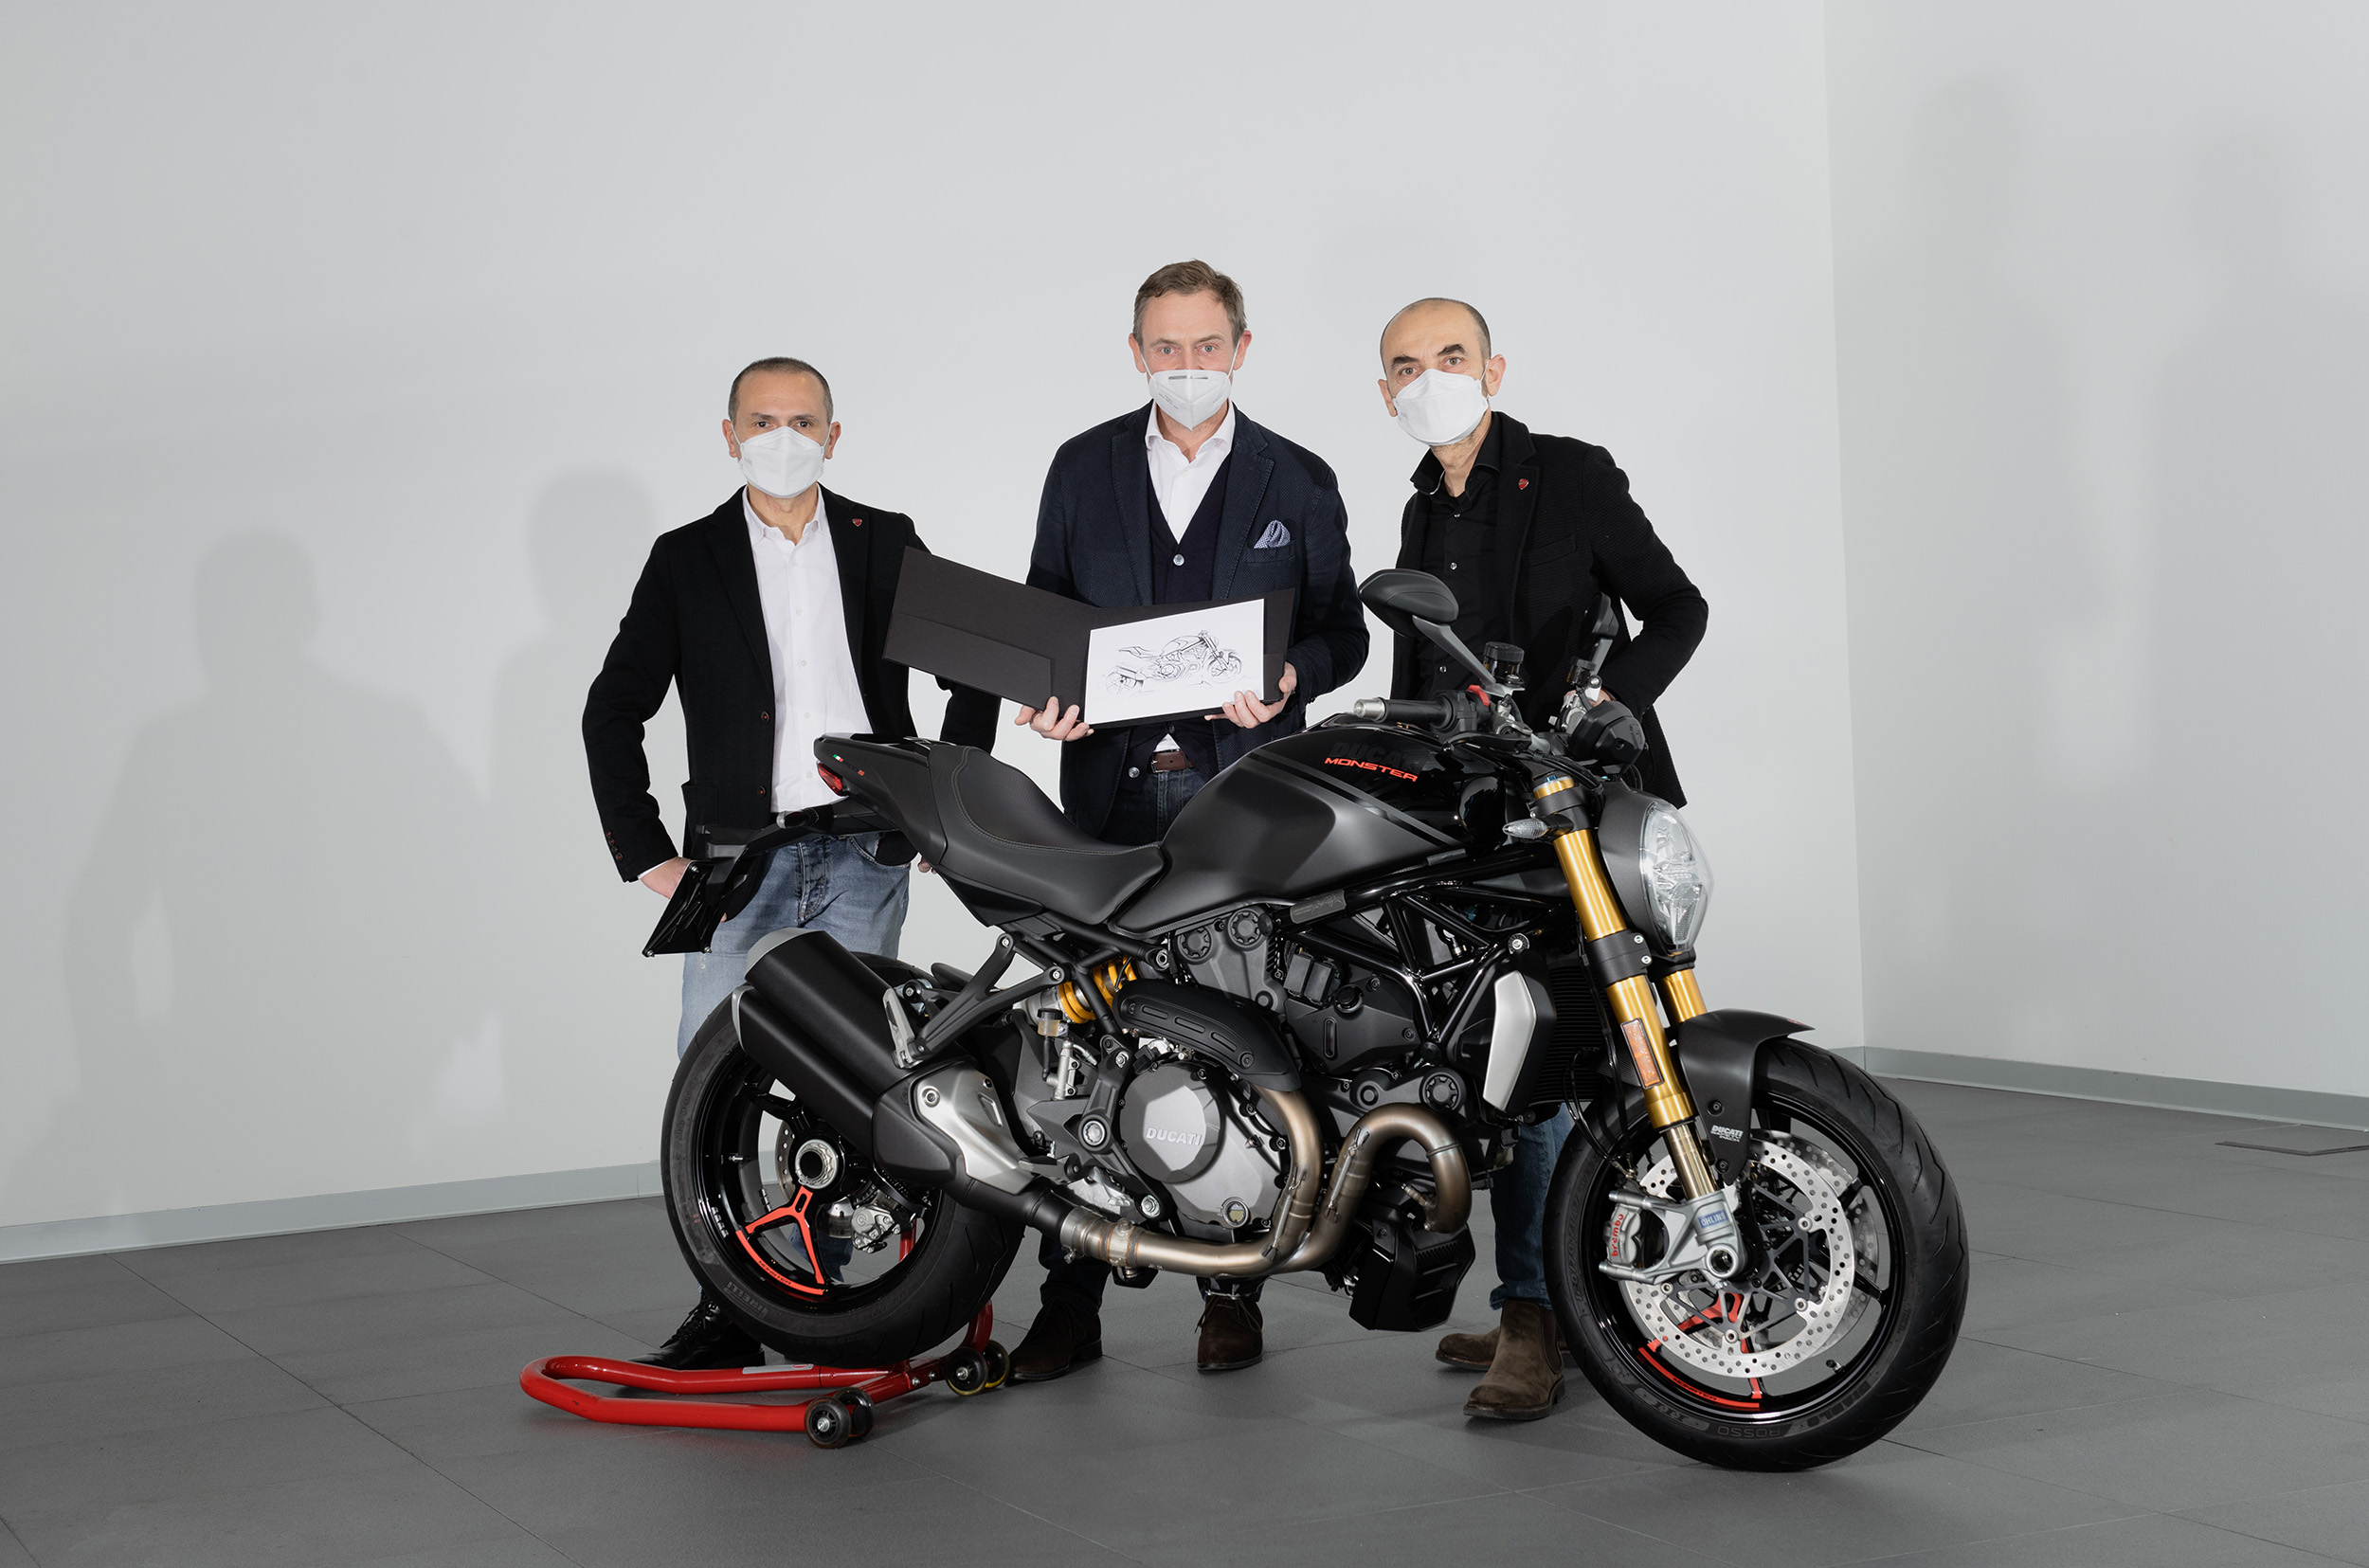 C. Domenicali (CEO Ducati) - A.Ferraresi (Ducati Design Centre Director) handing over the 350,000th Monster to S. De Rose